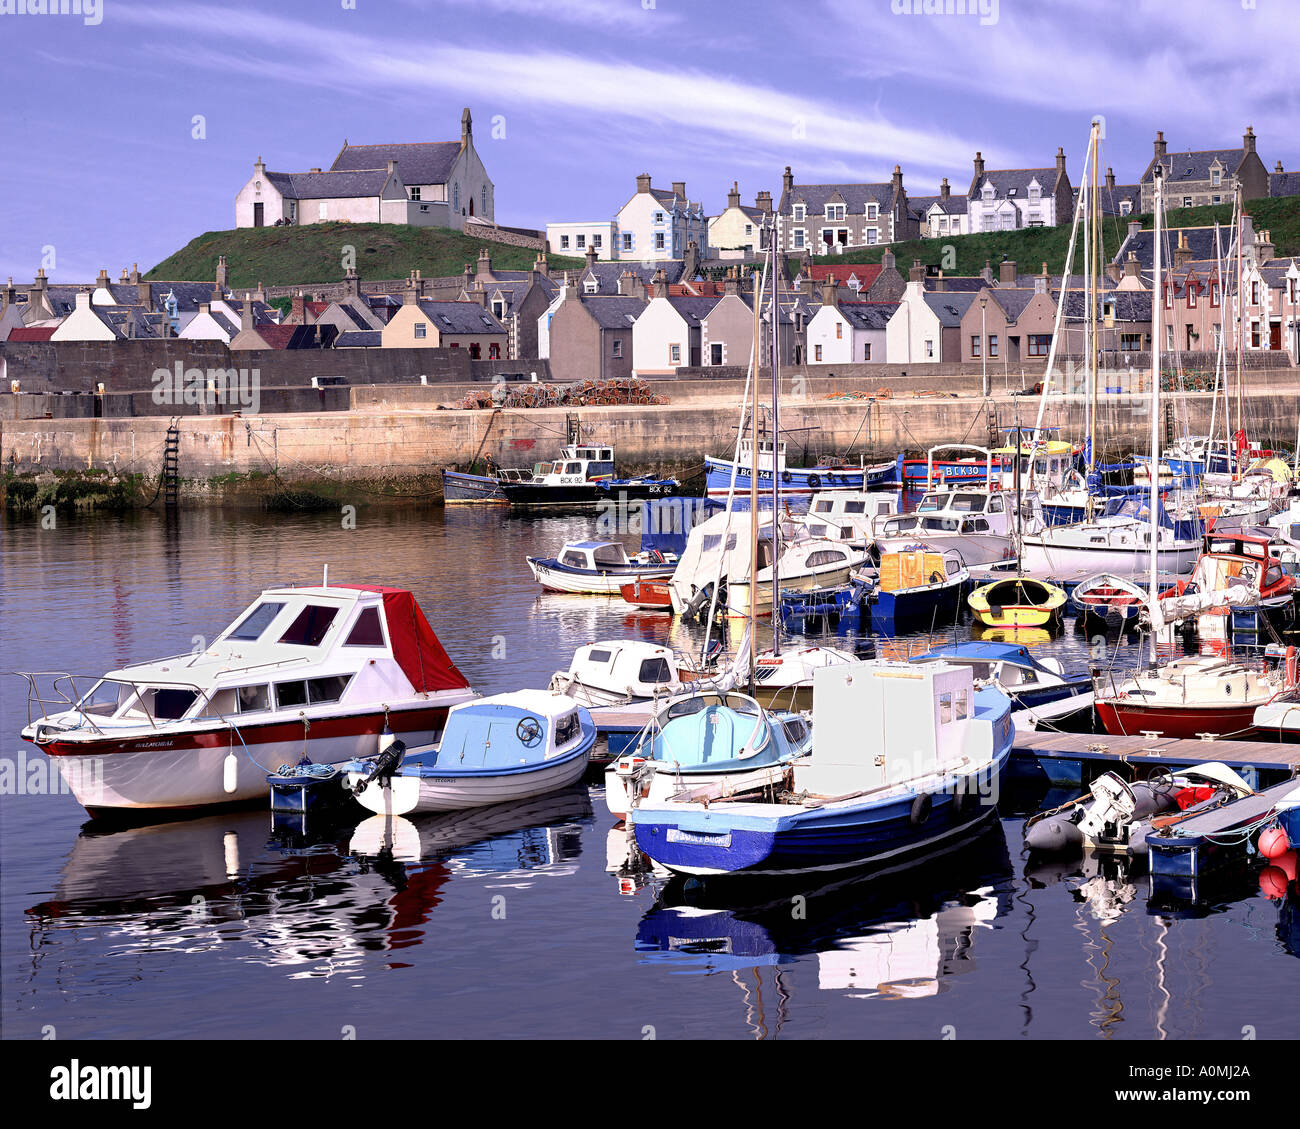 GB - SCOTLAND: Findochty Harbour - Stock Image